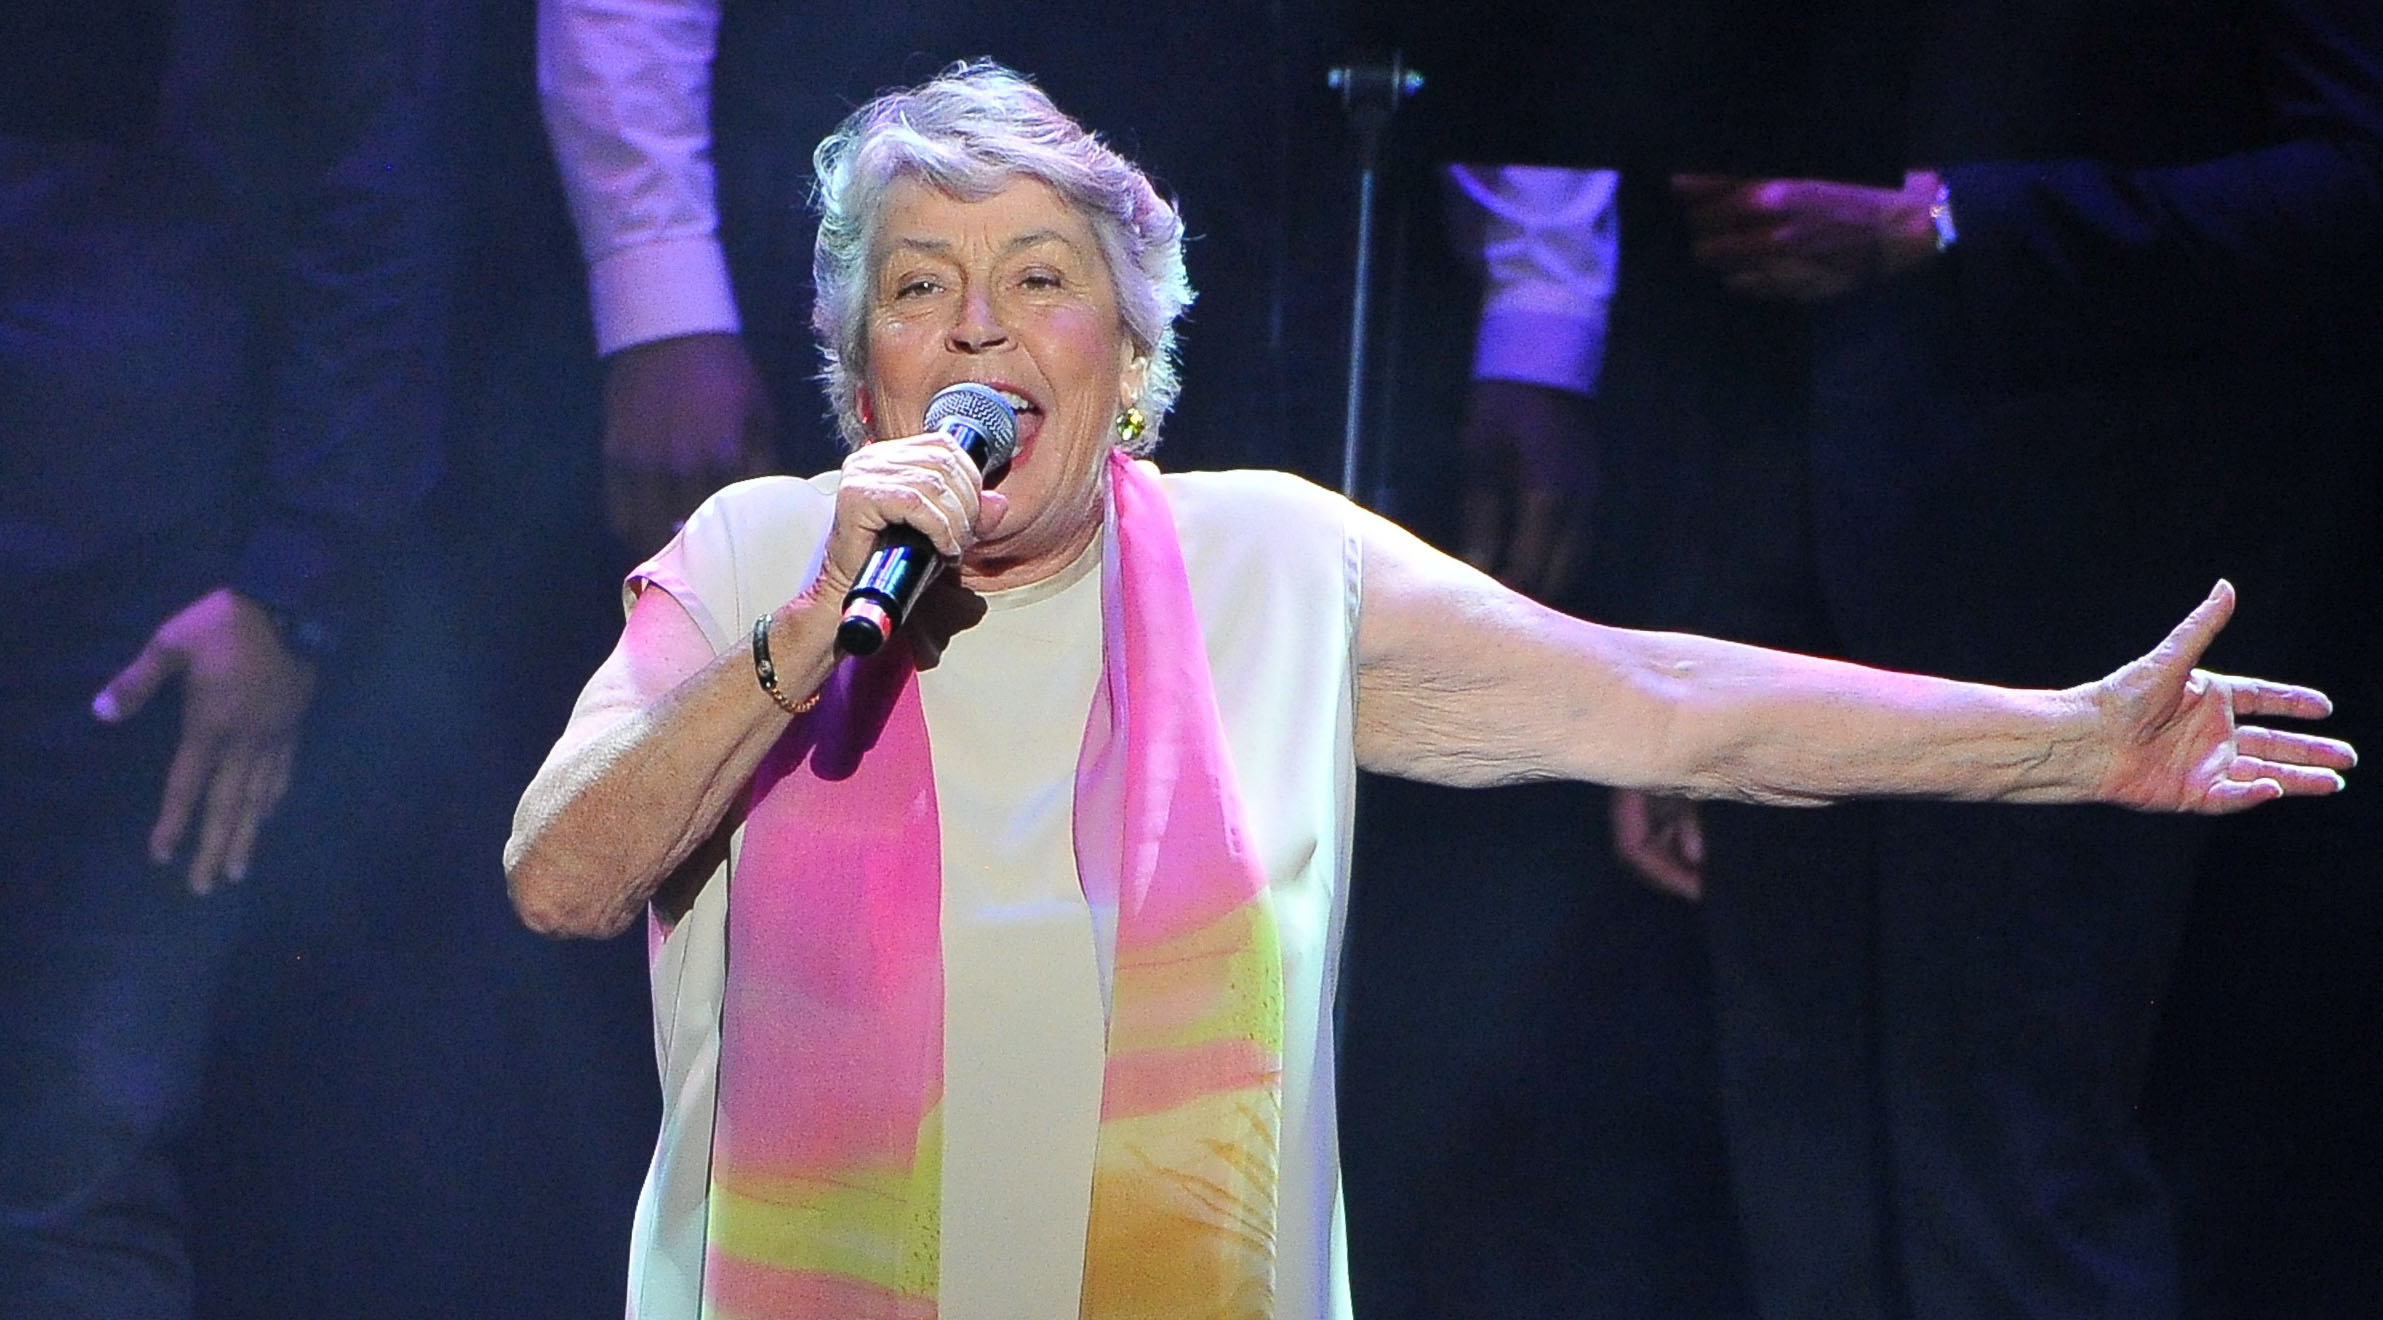 I Am Woman singer Helen Reddy passed away at the age of 78